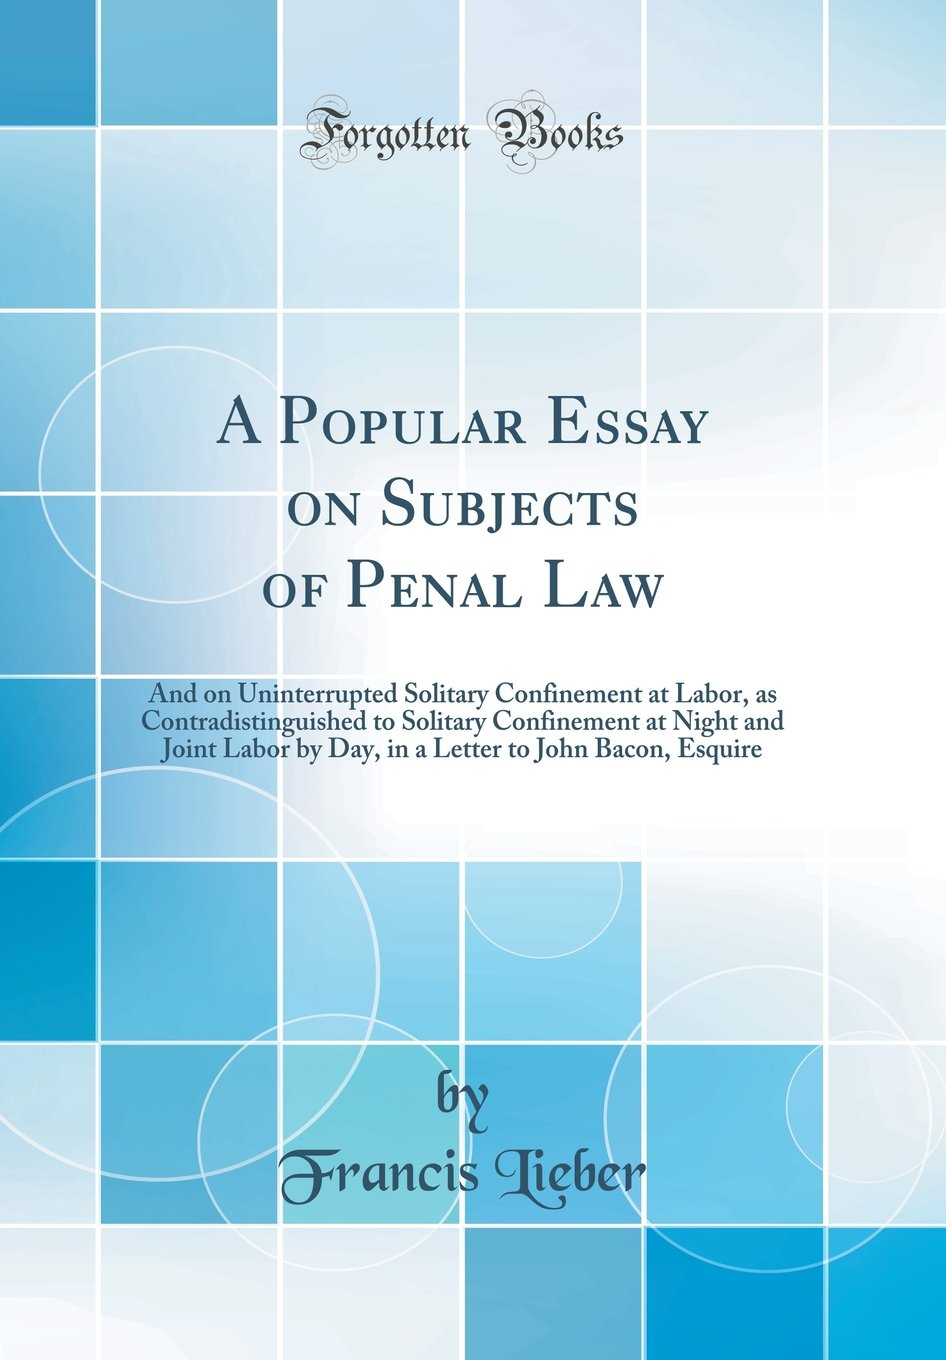 Buy A Popular Essay on Subjects of Penal Law: And on